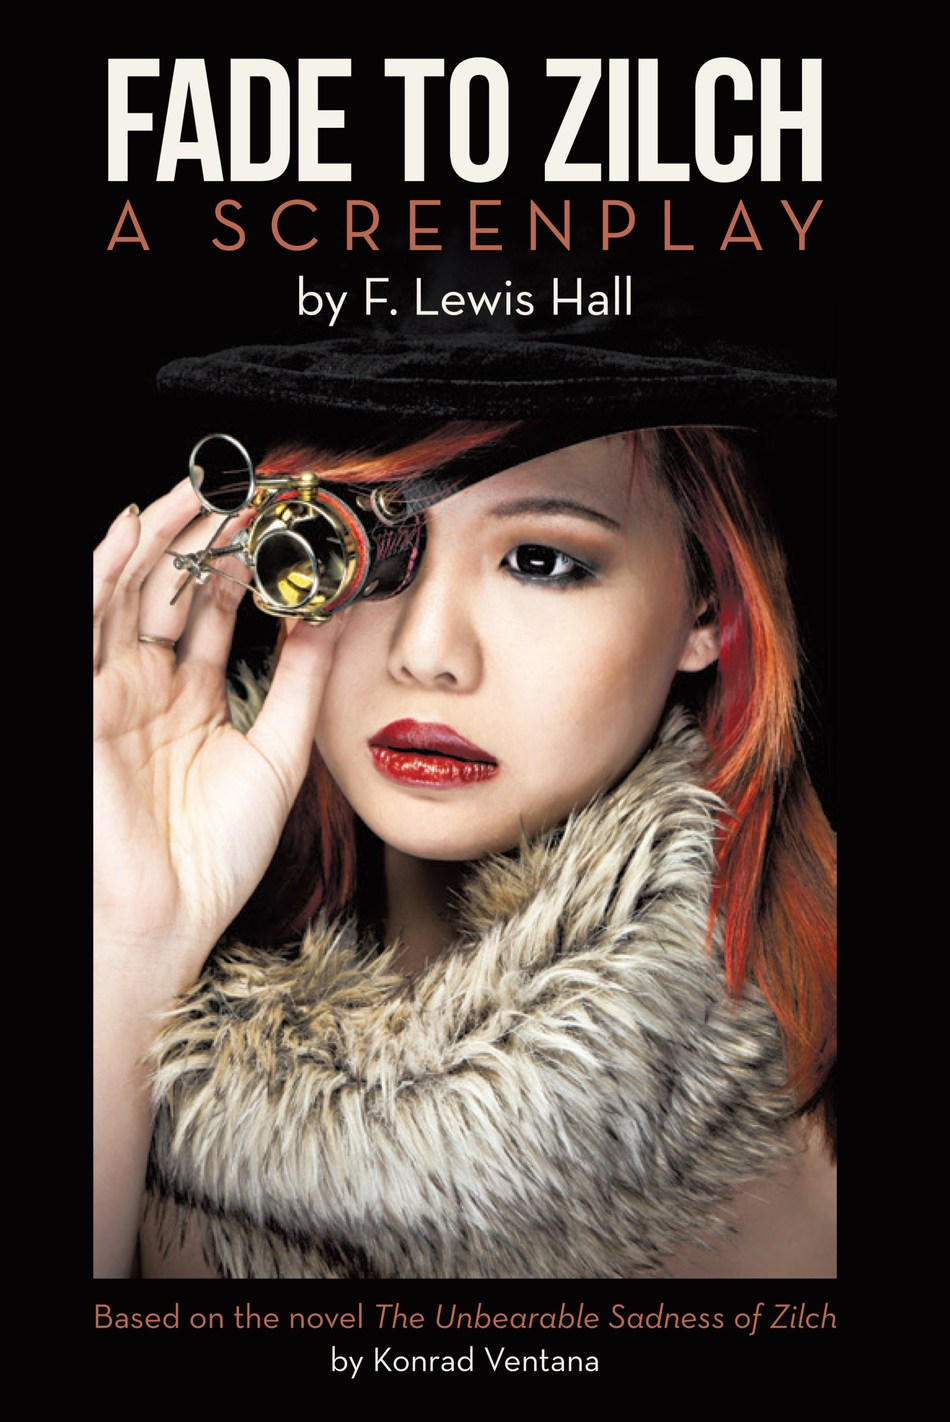 "Based on the novel, ""The Unbearable Sadness of Zilch"" by Konrad Ventana, the drama is a stunning commentary on modernism, existentialism, male egotism, and the emergence of a radical new brand of feminism—the feminist provocateur. Fade to Zilch by F. Lewis Hall is a story for the ages that lays bare the human heart as it presages current events."